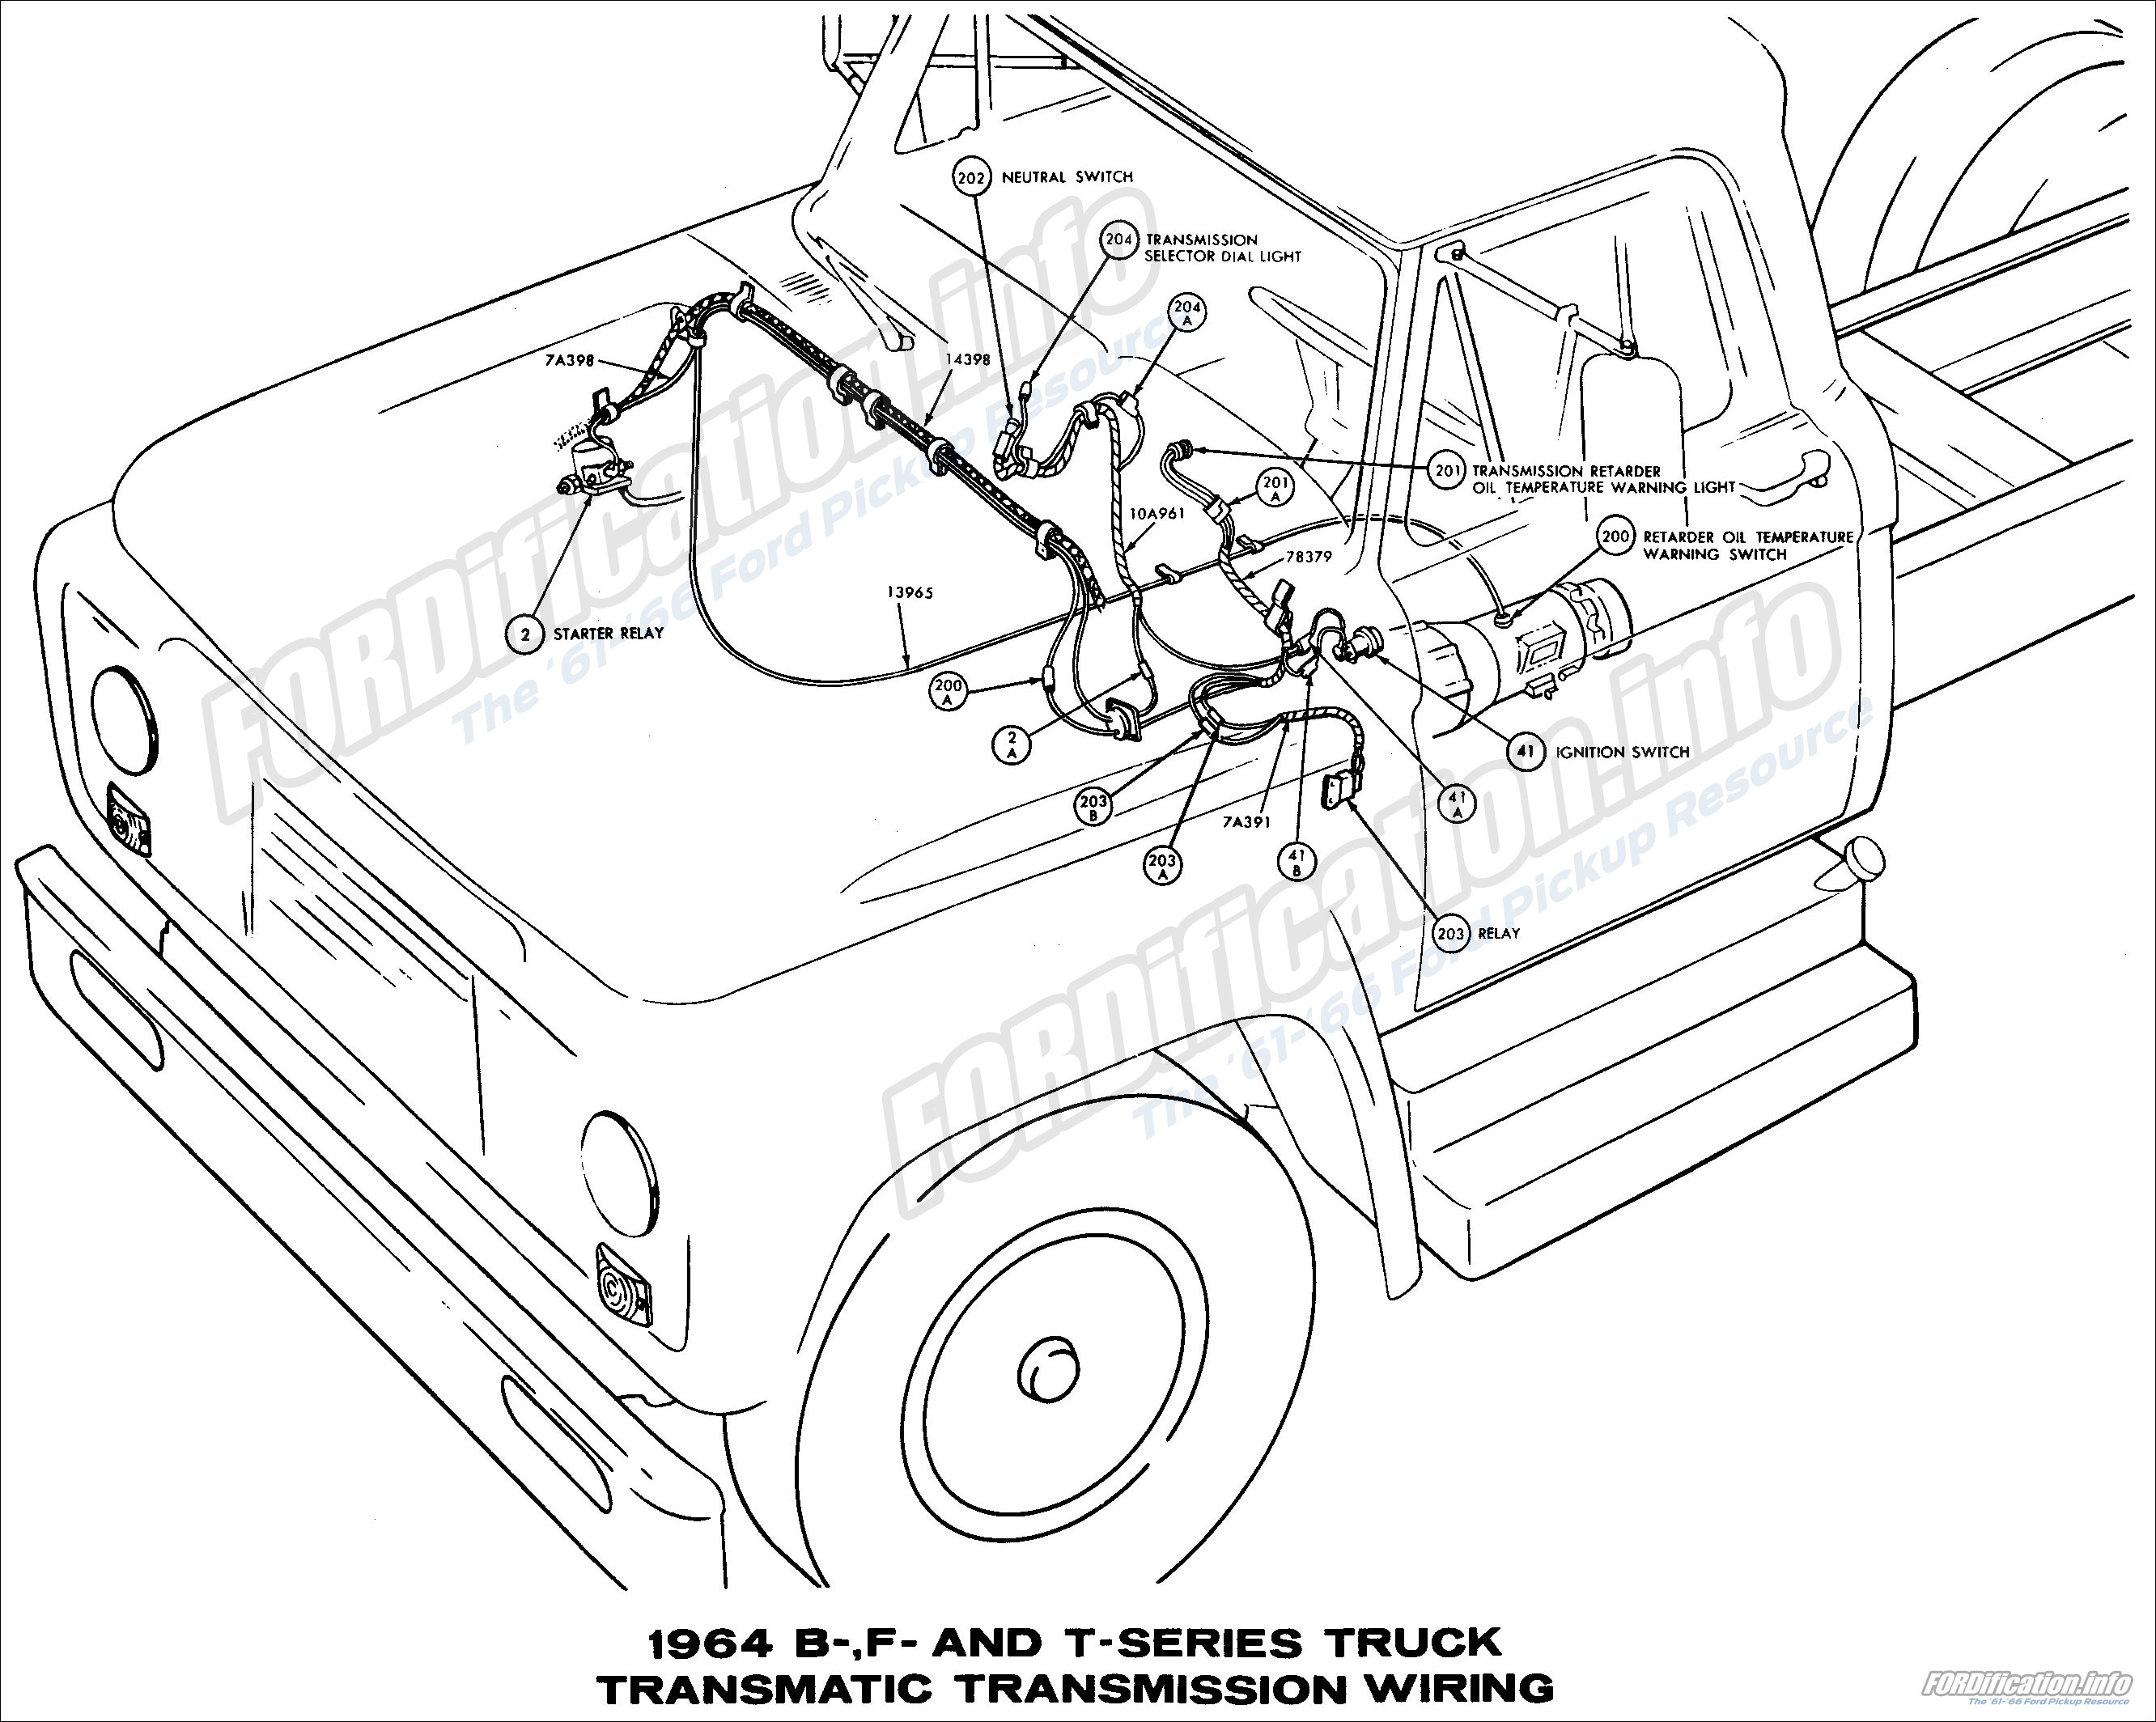 1964 ford truck wiring diagrams fordification info the 61 66